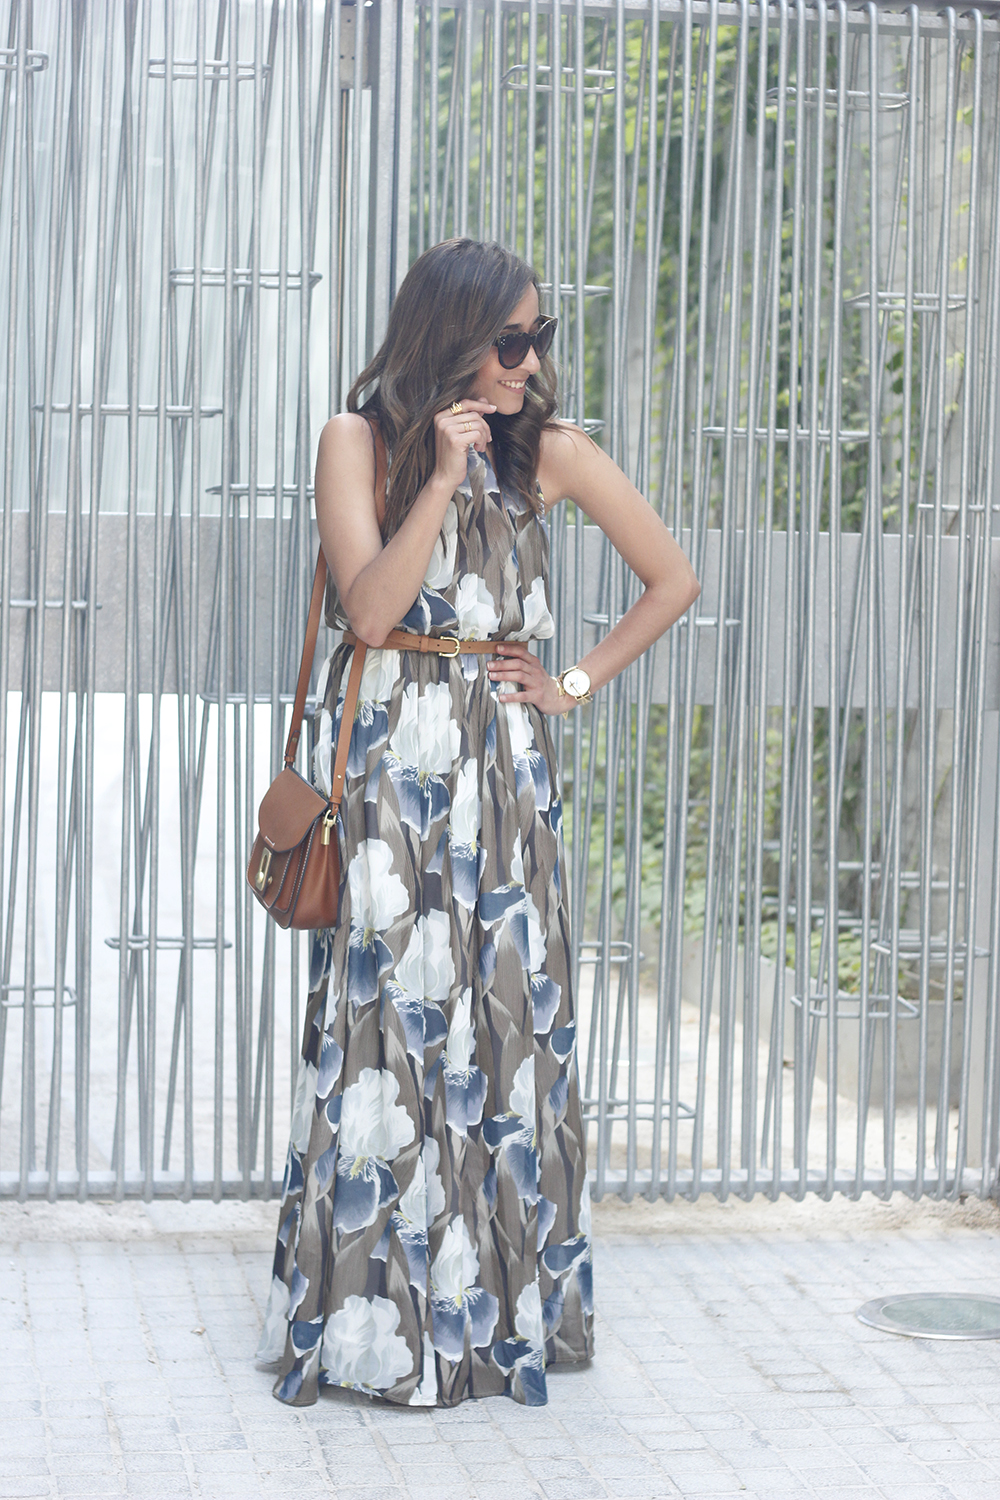 Maxi Dress With Floral Pattern heels summer outfit style04